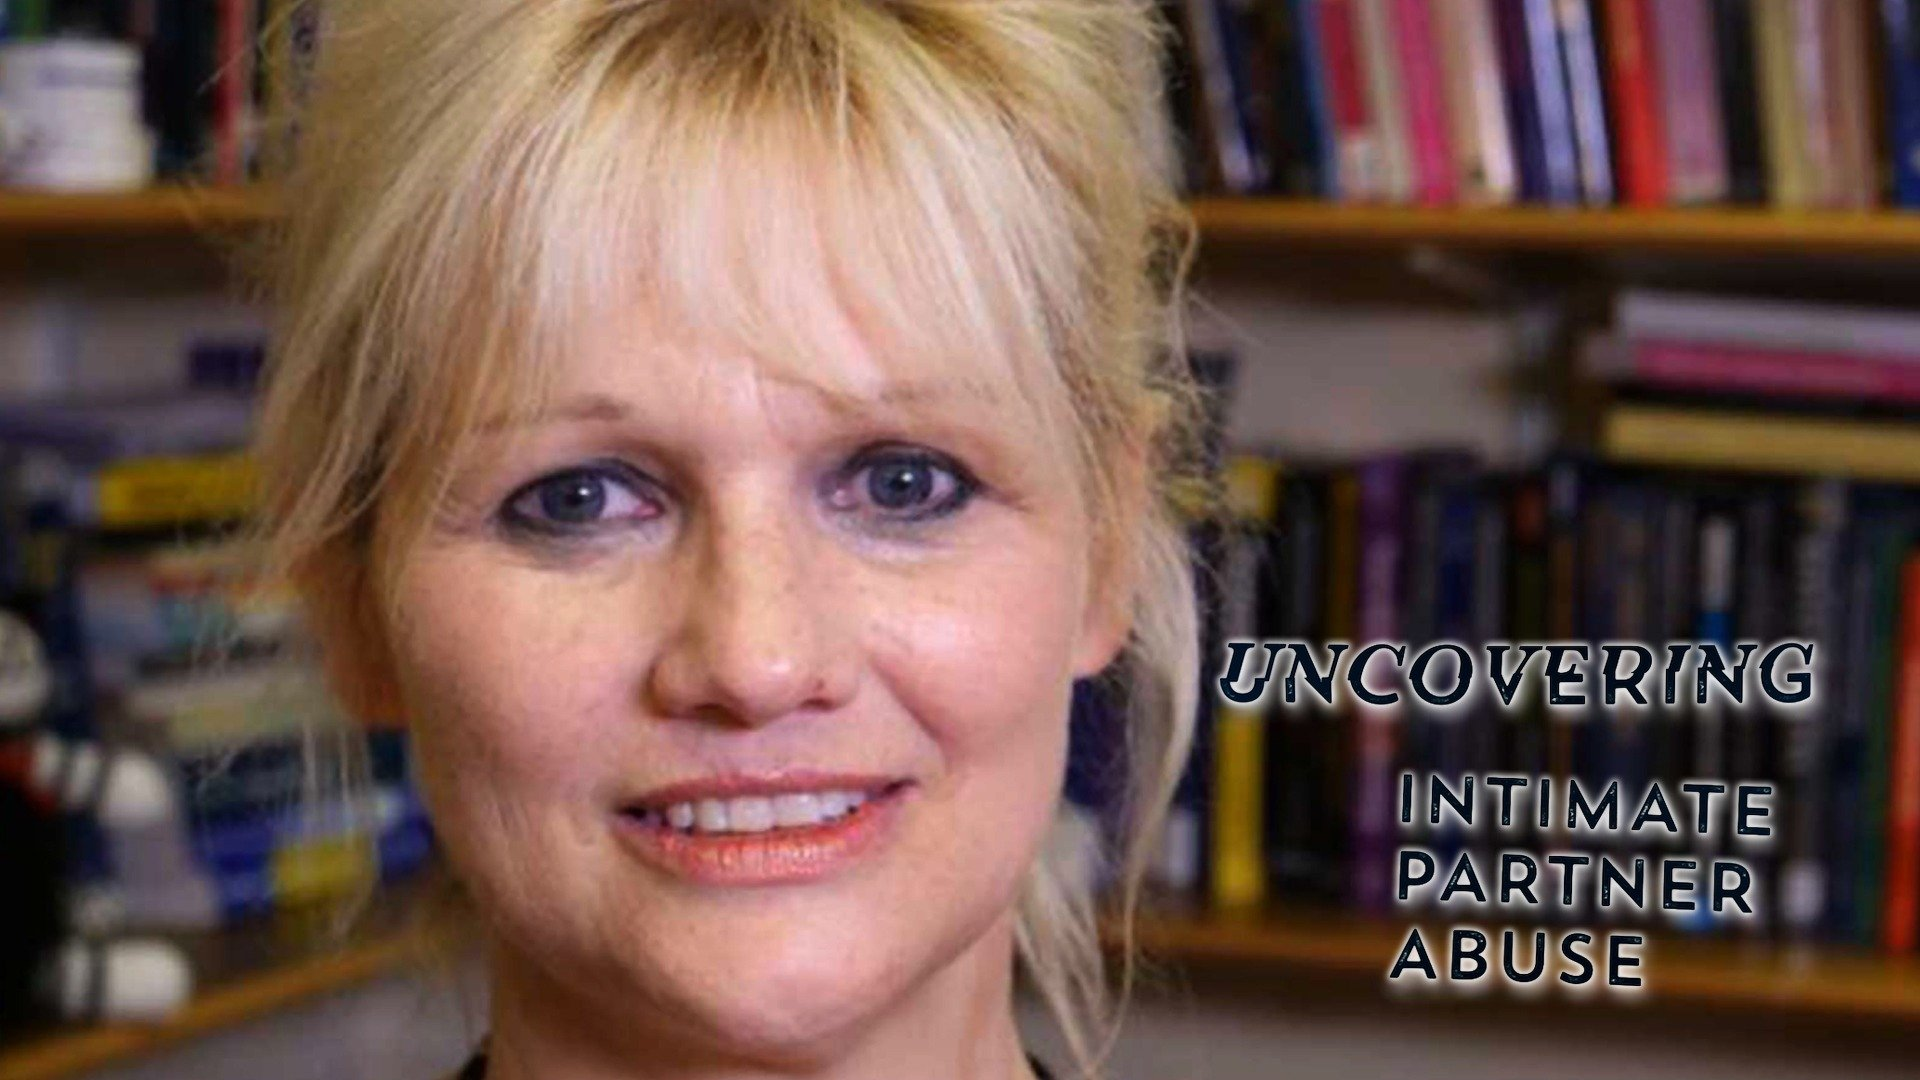 Uncovering Intimate Partner Abuse